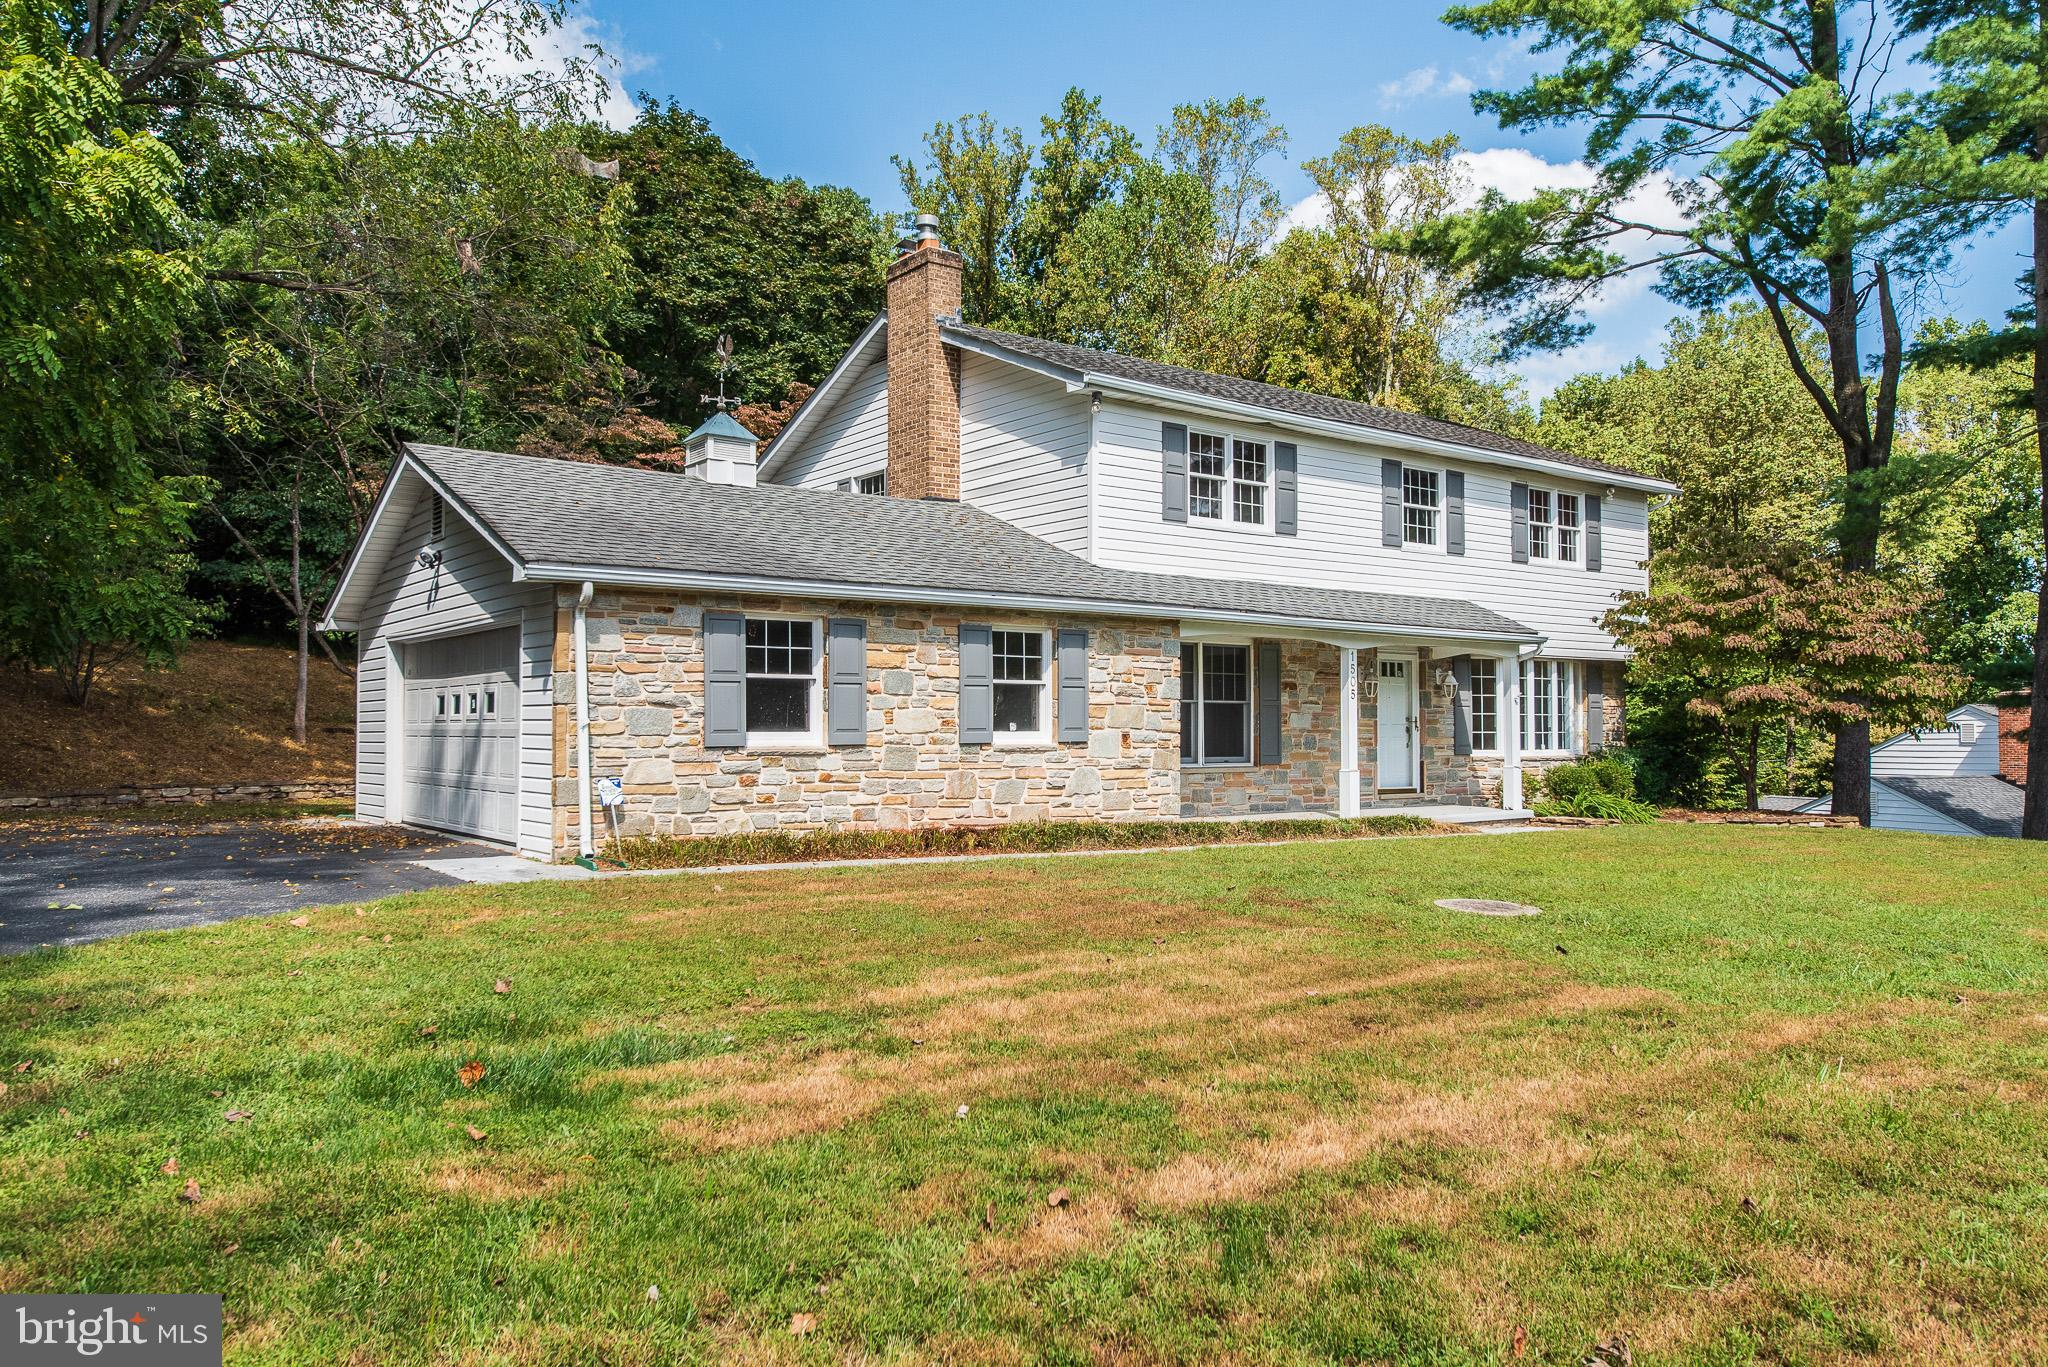 BEAUTIFUL 4 BR 3.5 BA STONE FRONT COLONIAL IN SOUGHT AFTER GLENWOOD IS READY AND WAITING FOR YOU!!